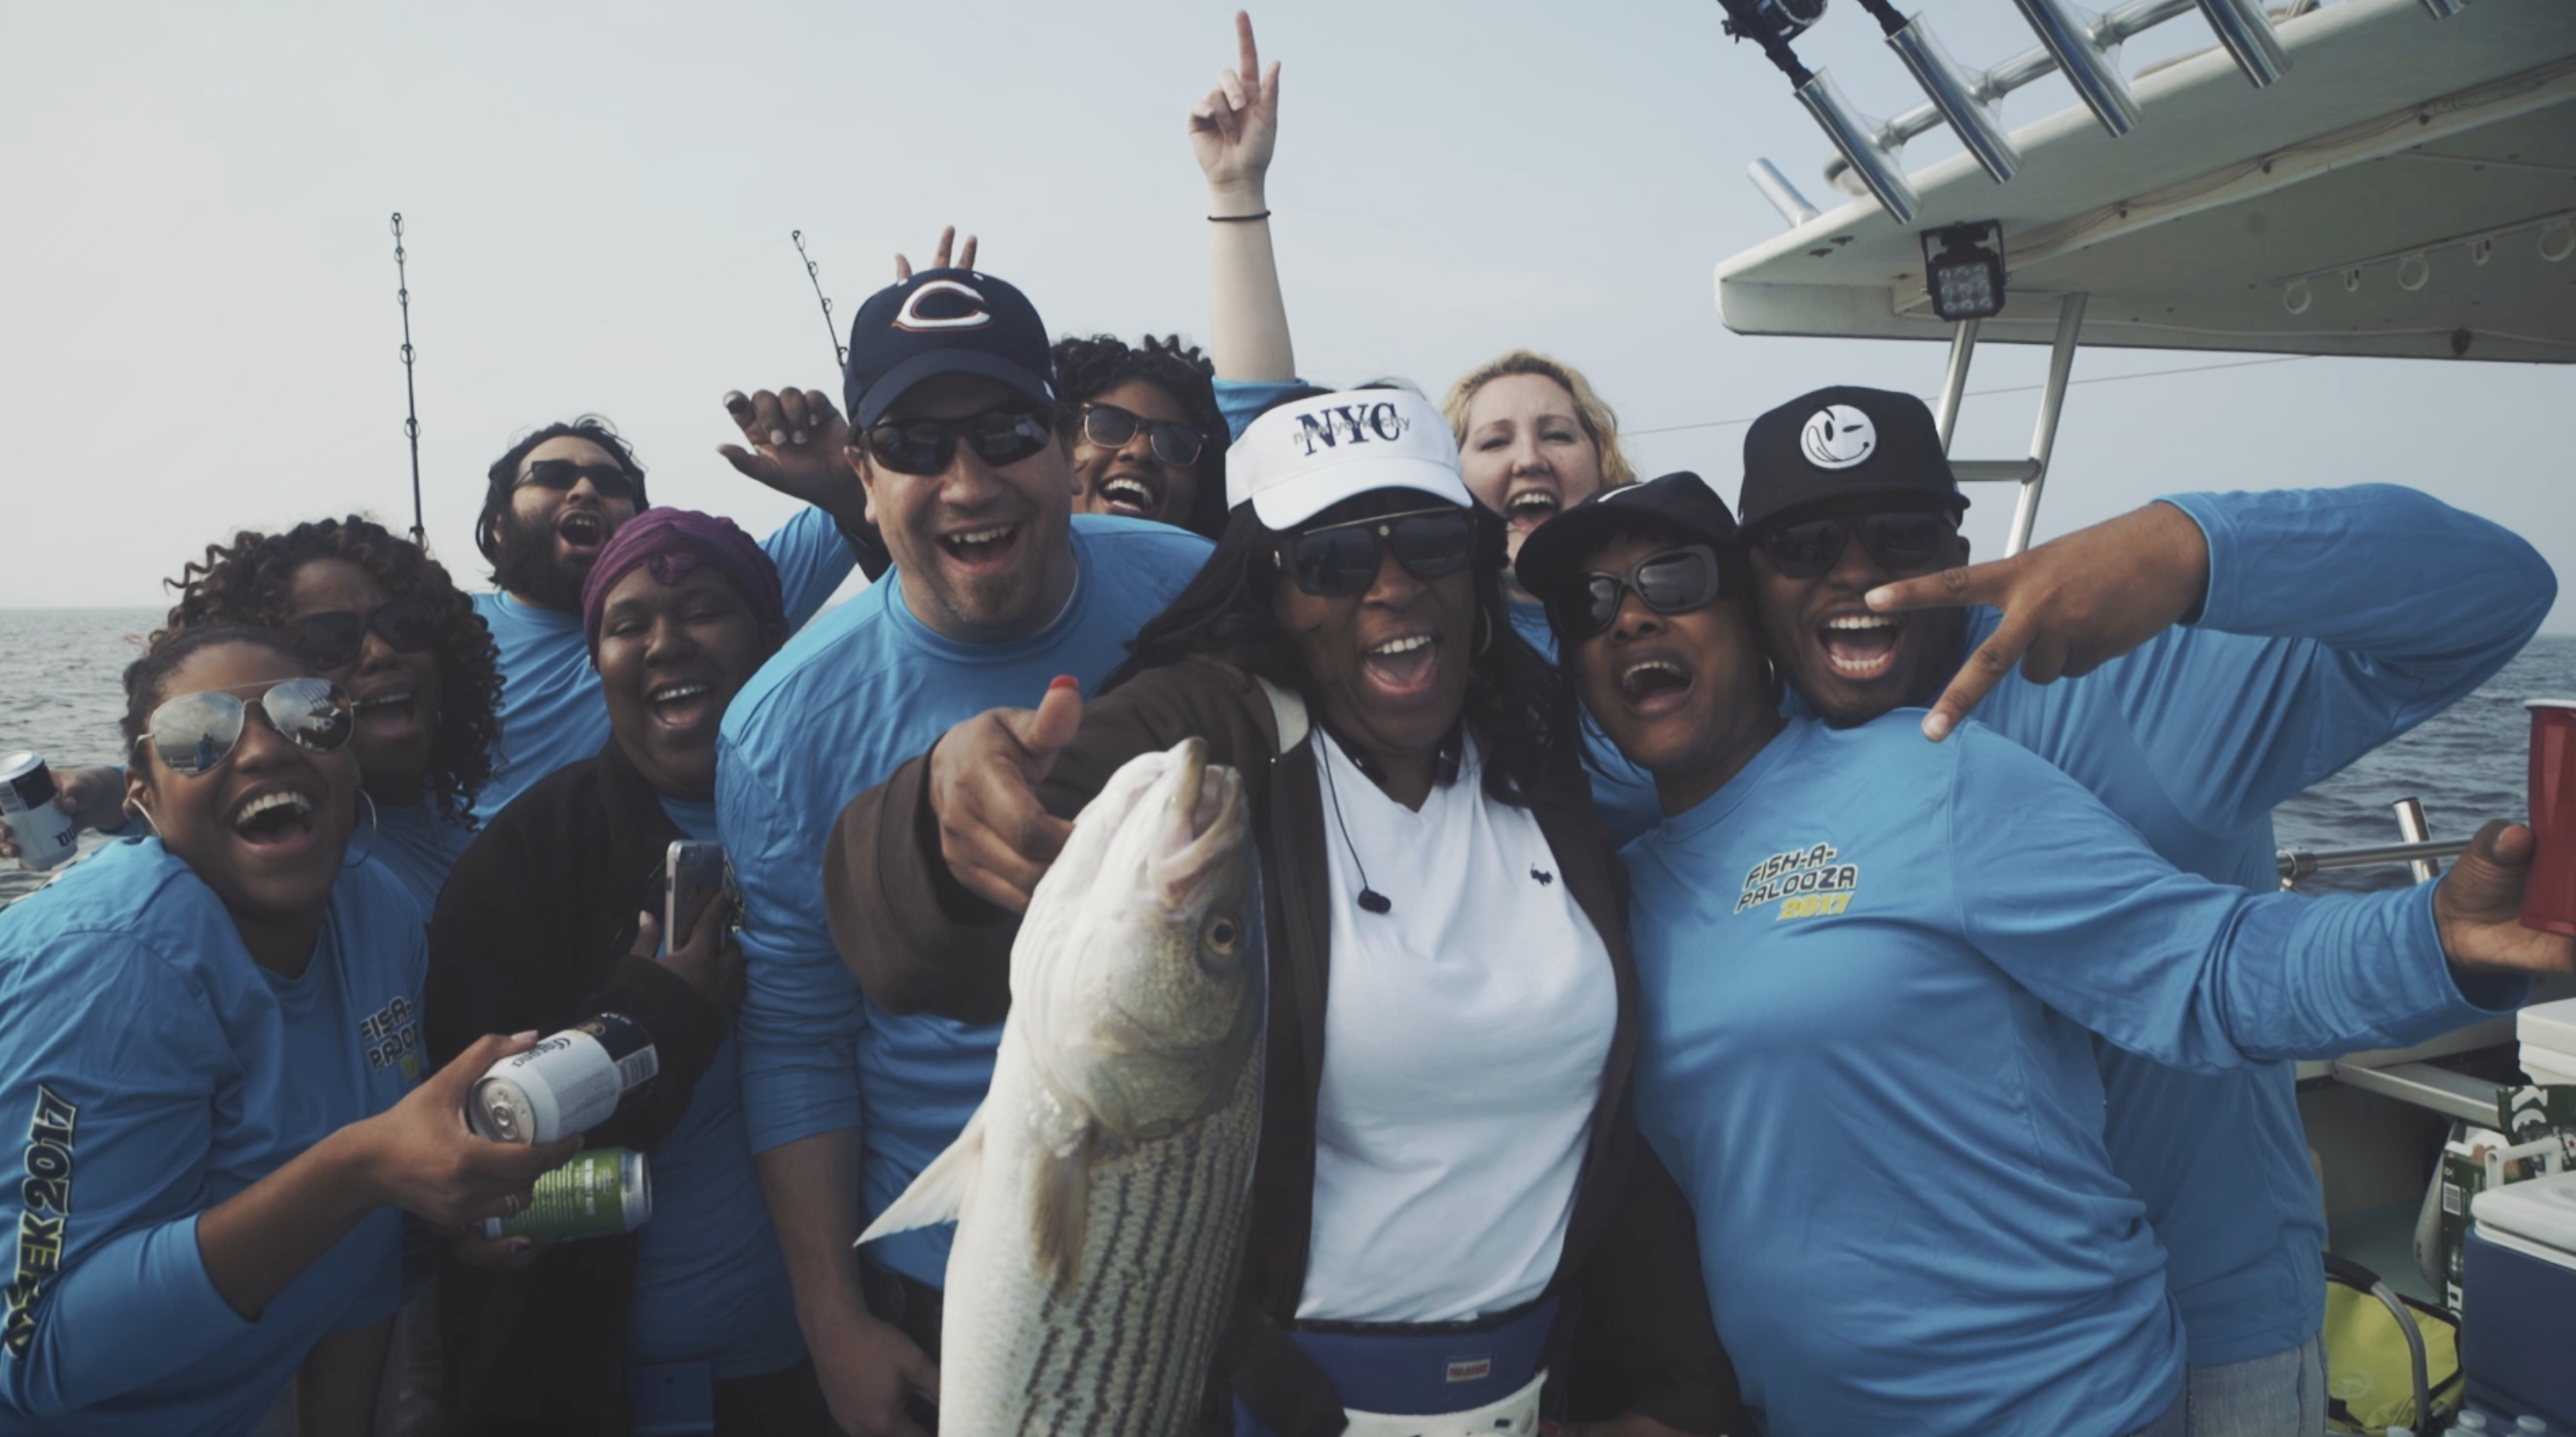 fun group, fishing competition